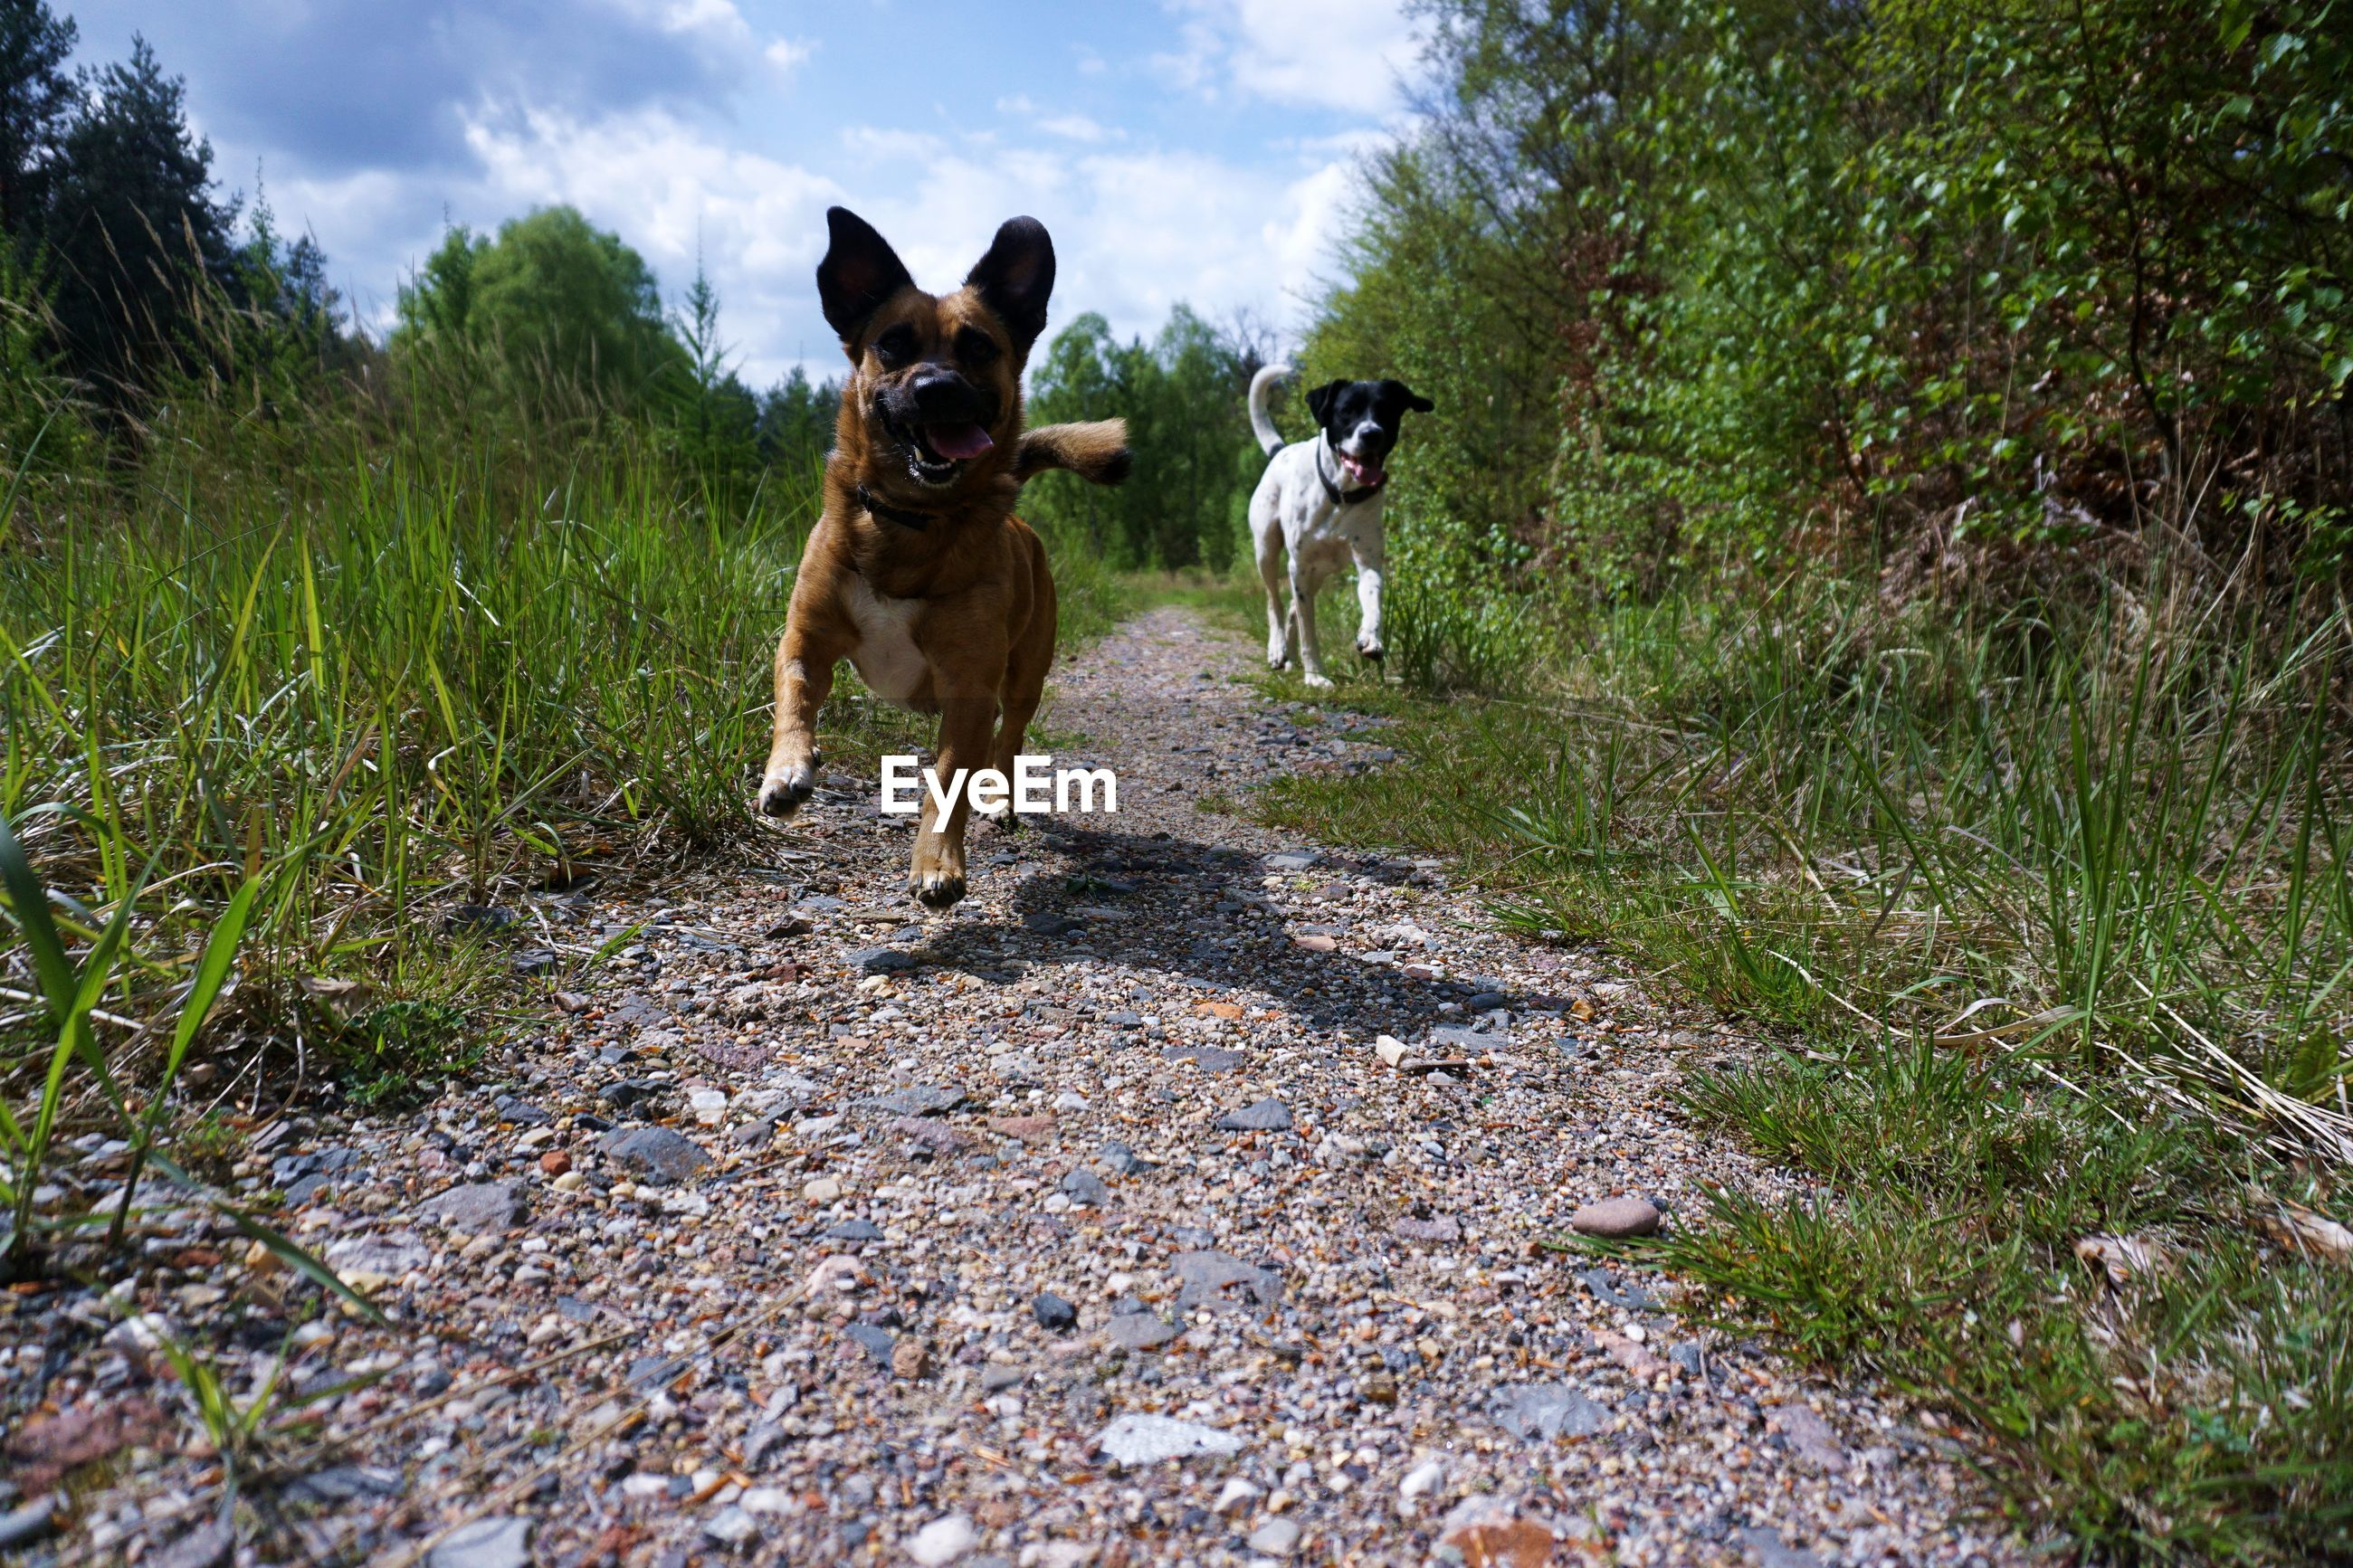 Dogs running on footpath against sky